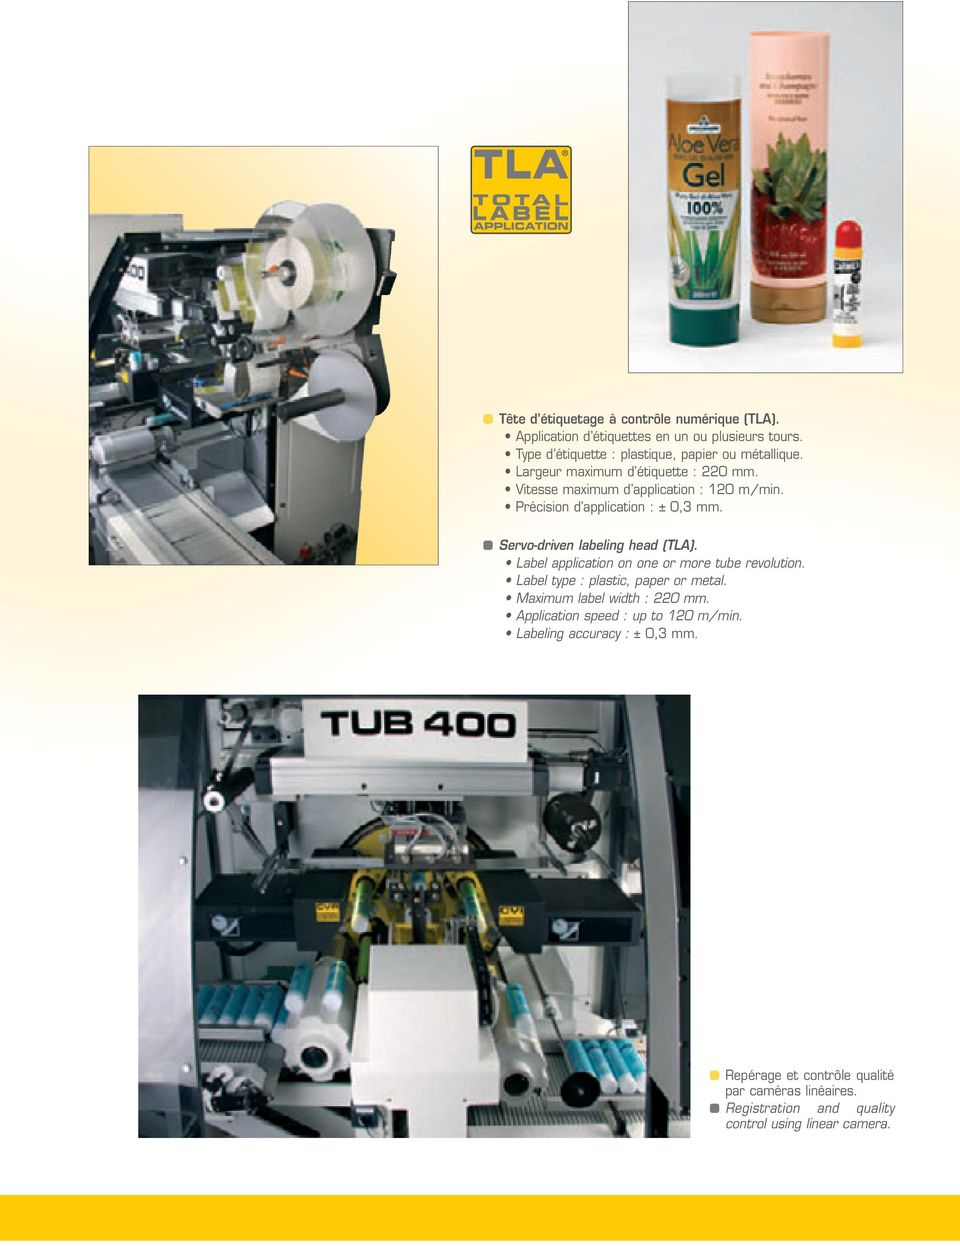 Servo-driven labeling head (TLA). Label application on one or more tube revolution. Label type : plastic, paper or metal.